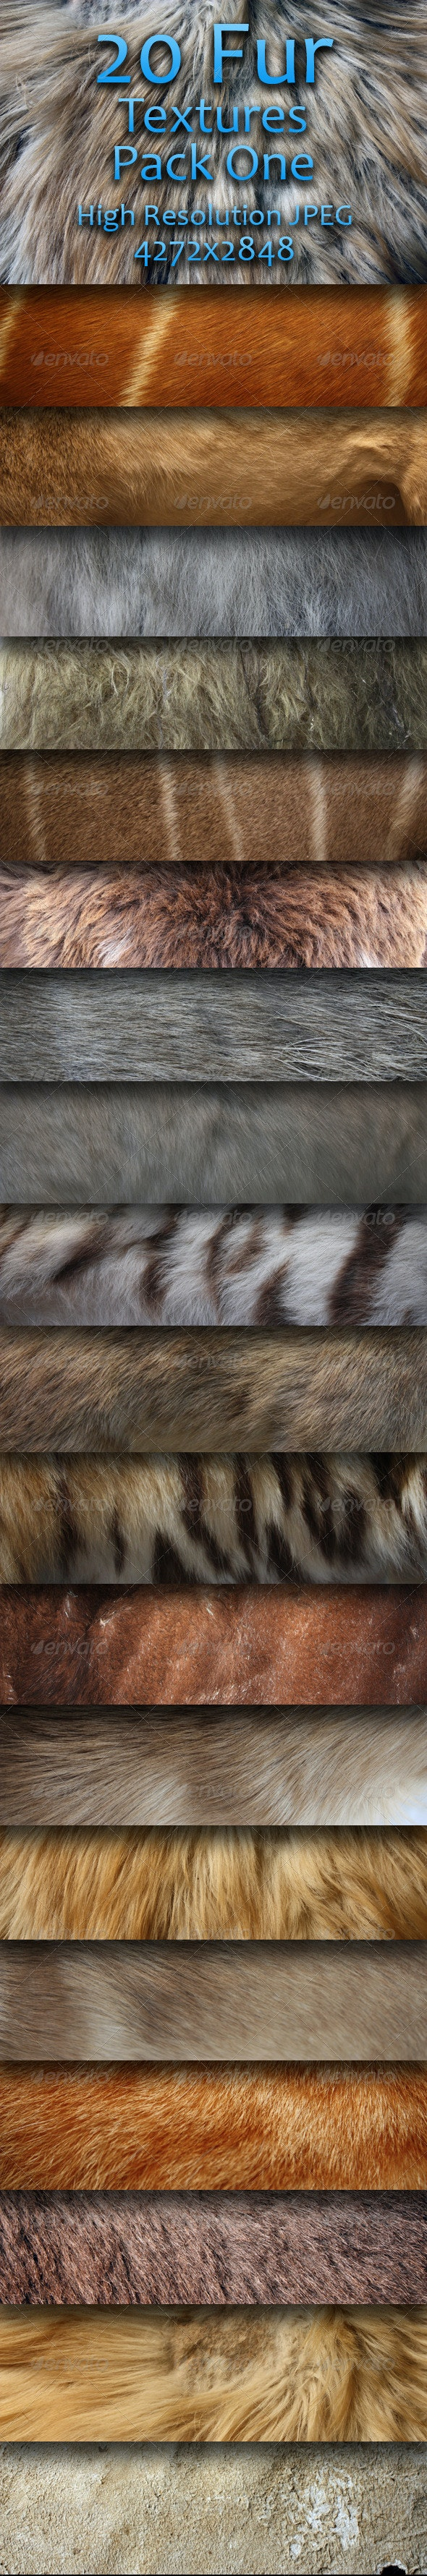 20 Fur Textures - Pack One - Miscellaneous Textures